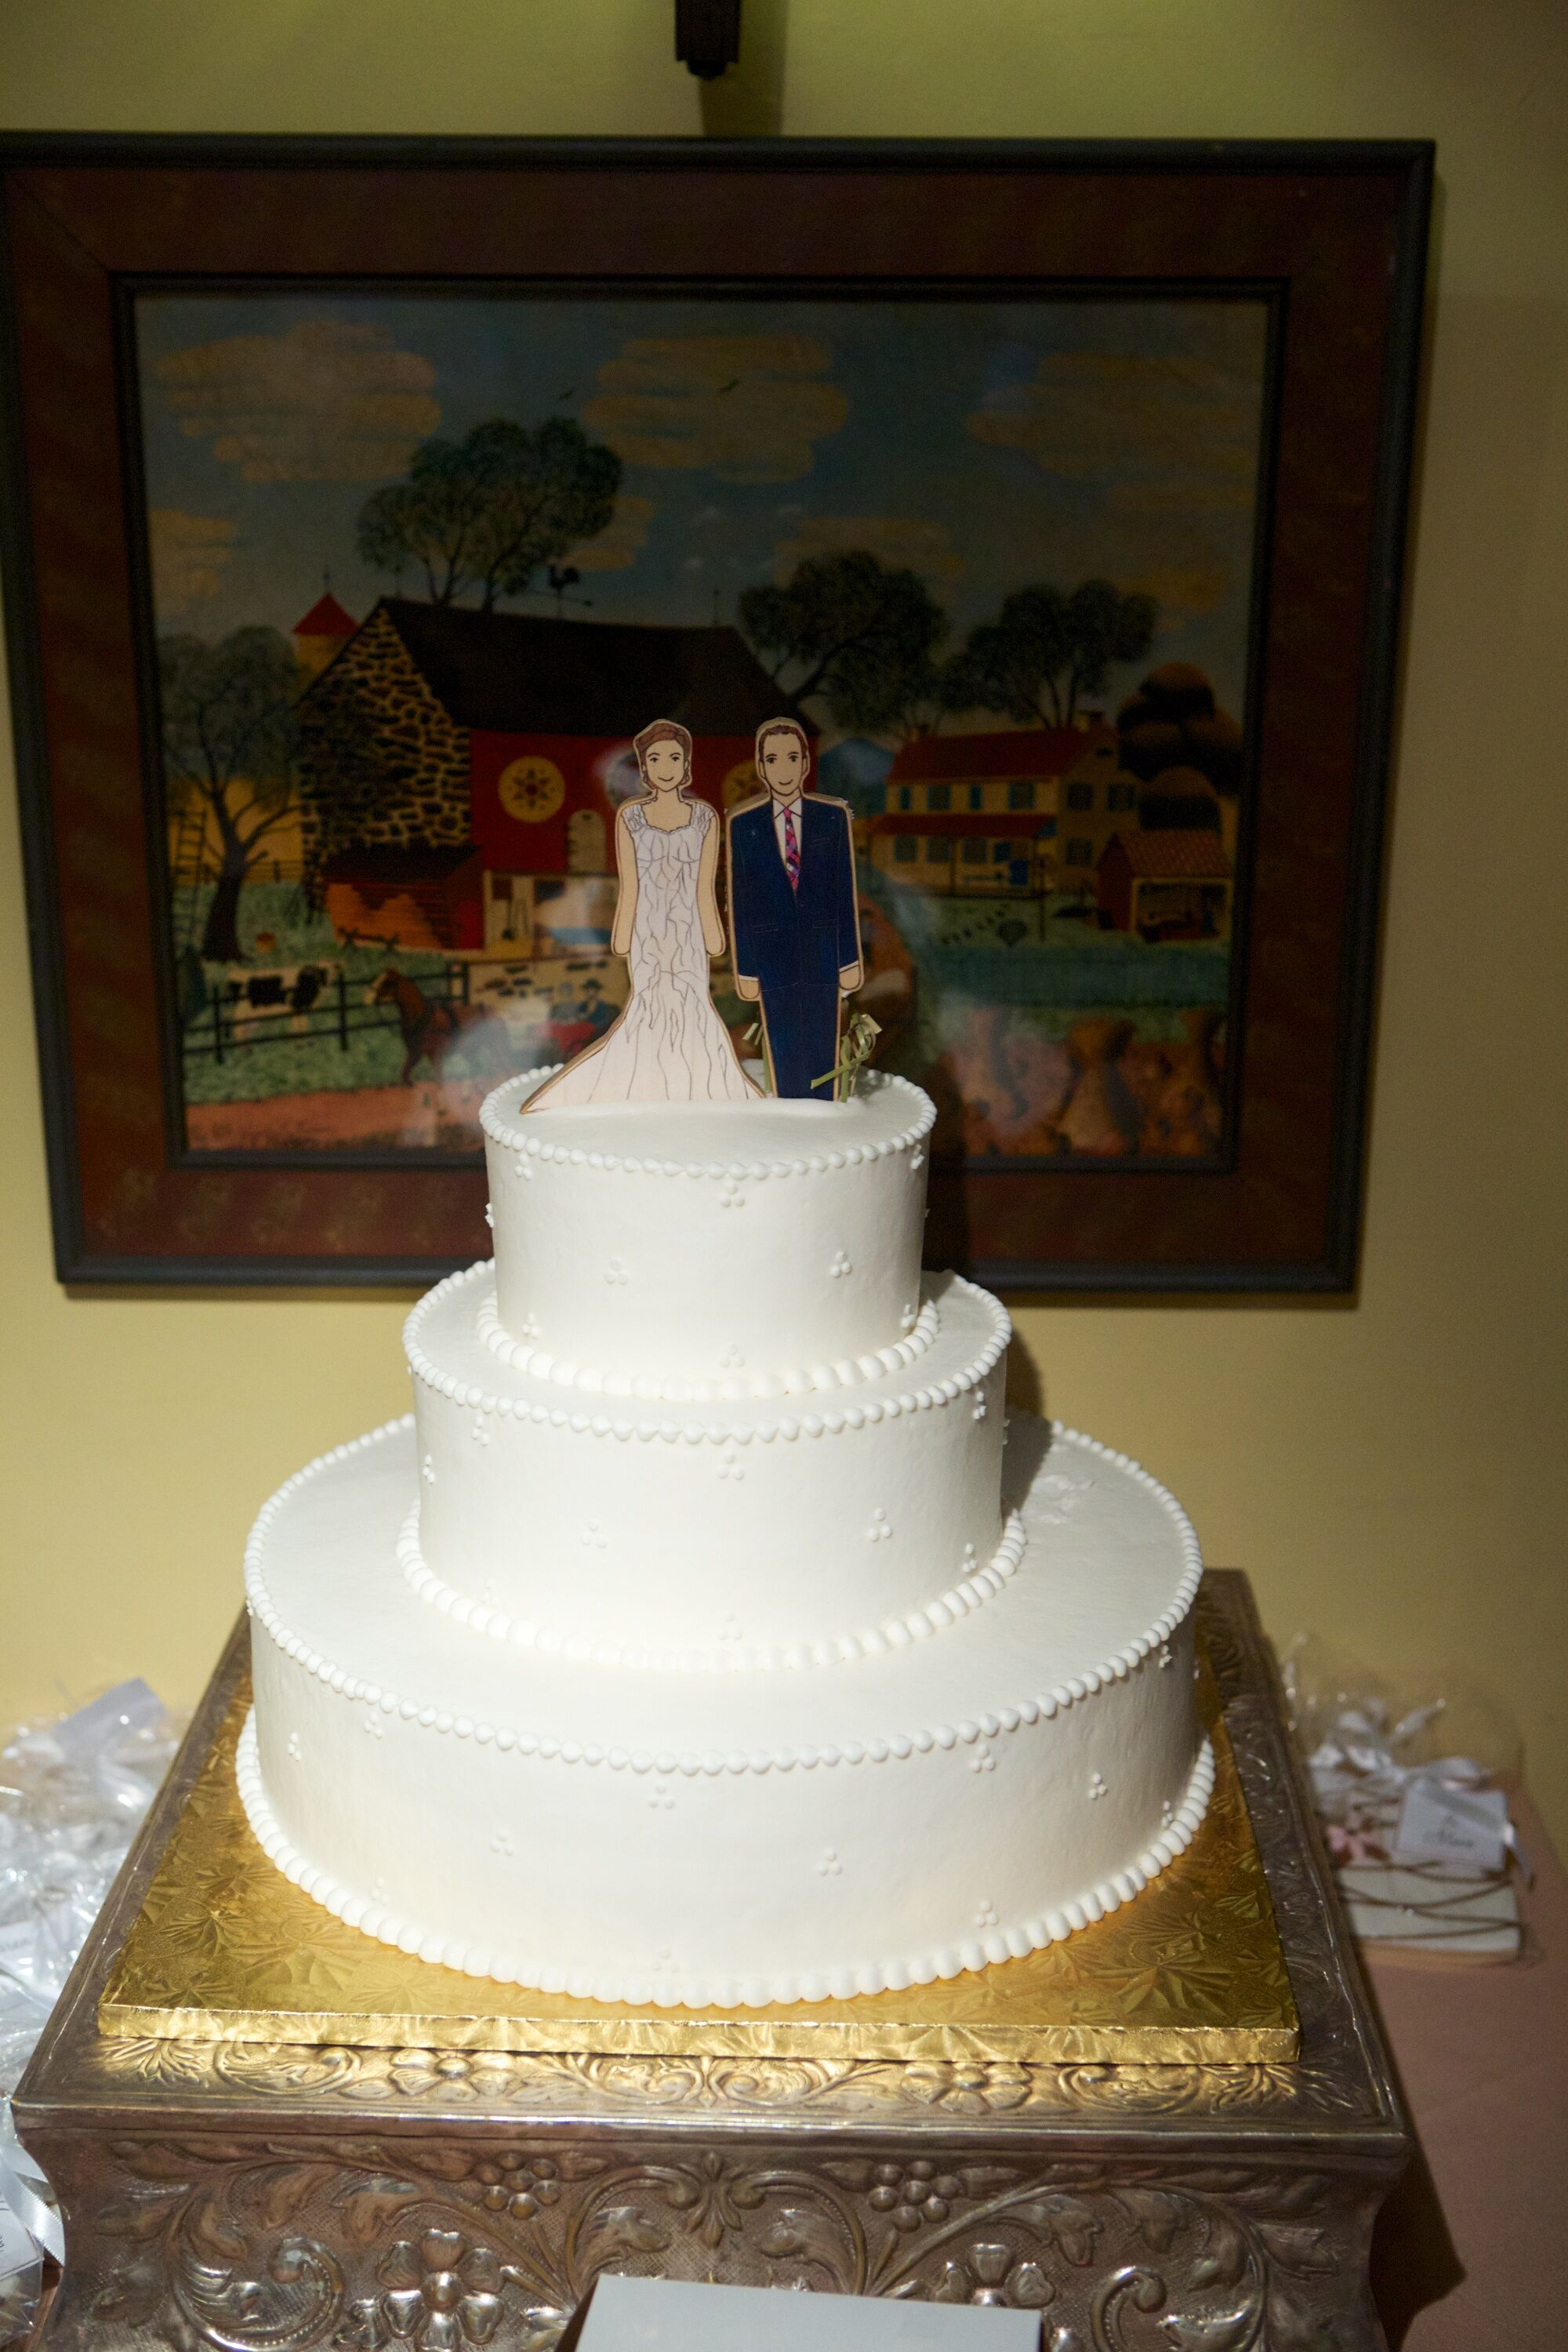 Three Tier White Wedding Cake with Bride and Groom Topper